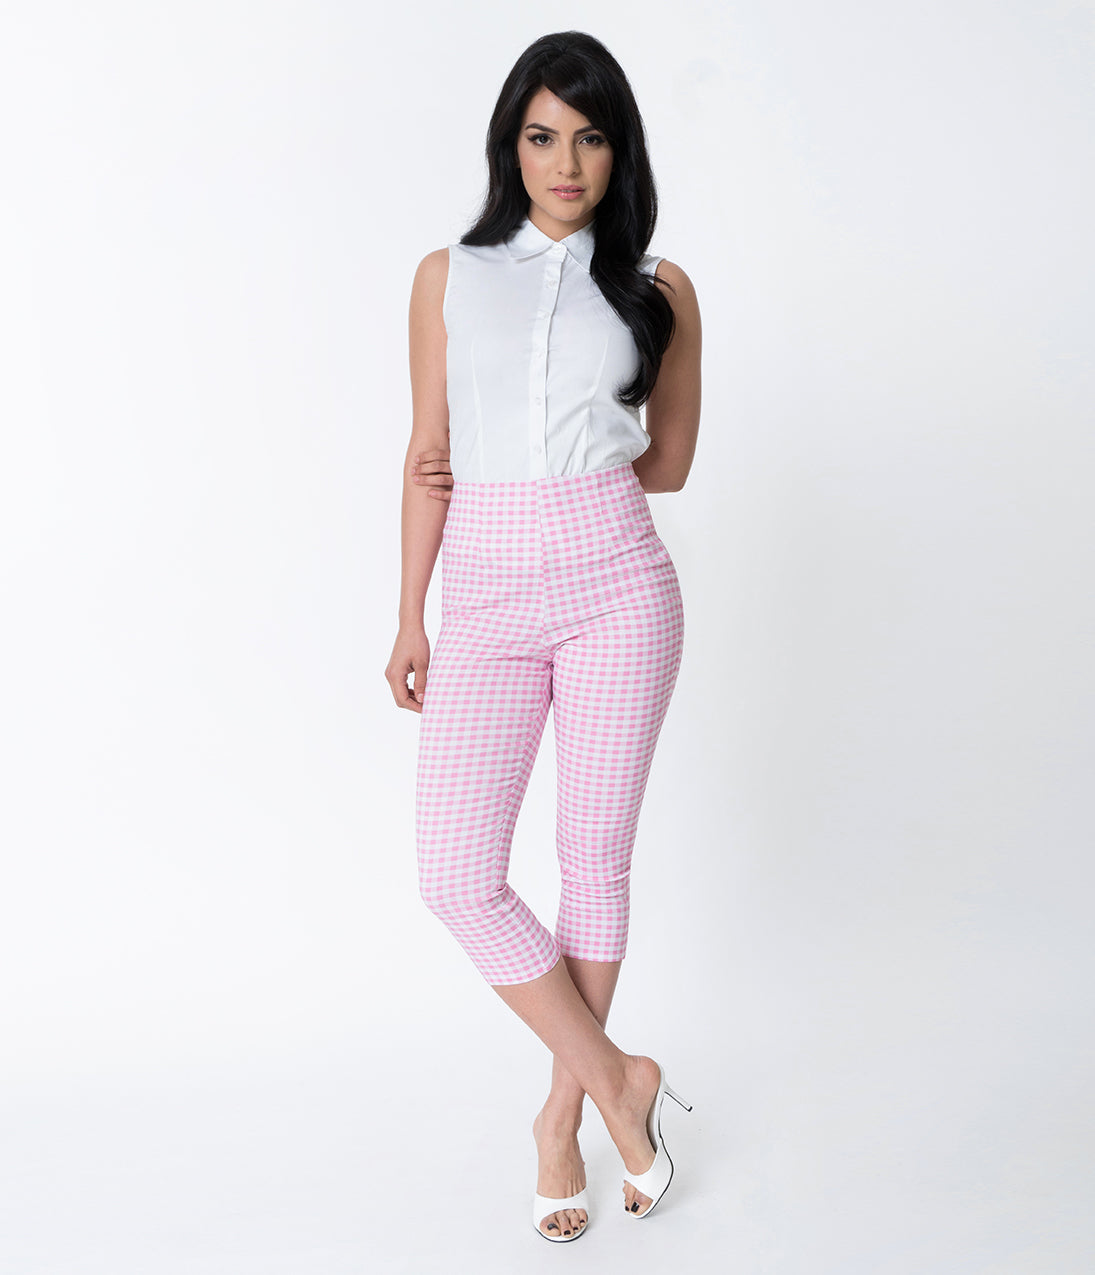 1950s Pants & Jeans- High Waist, Wide Leg, Capri, Pedal Pushers Hell Bunny 1950S Style Pink  White Gingham Judy Cigarette Capri $42.00 AT vintagedancer.com